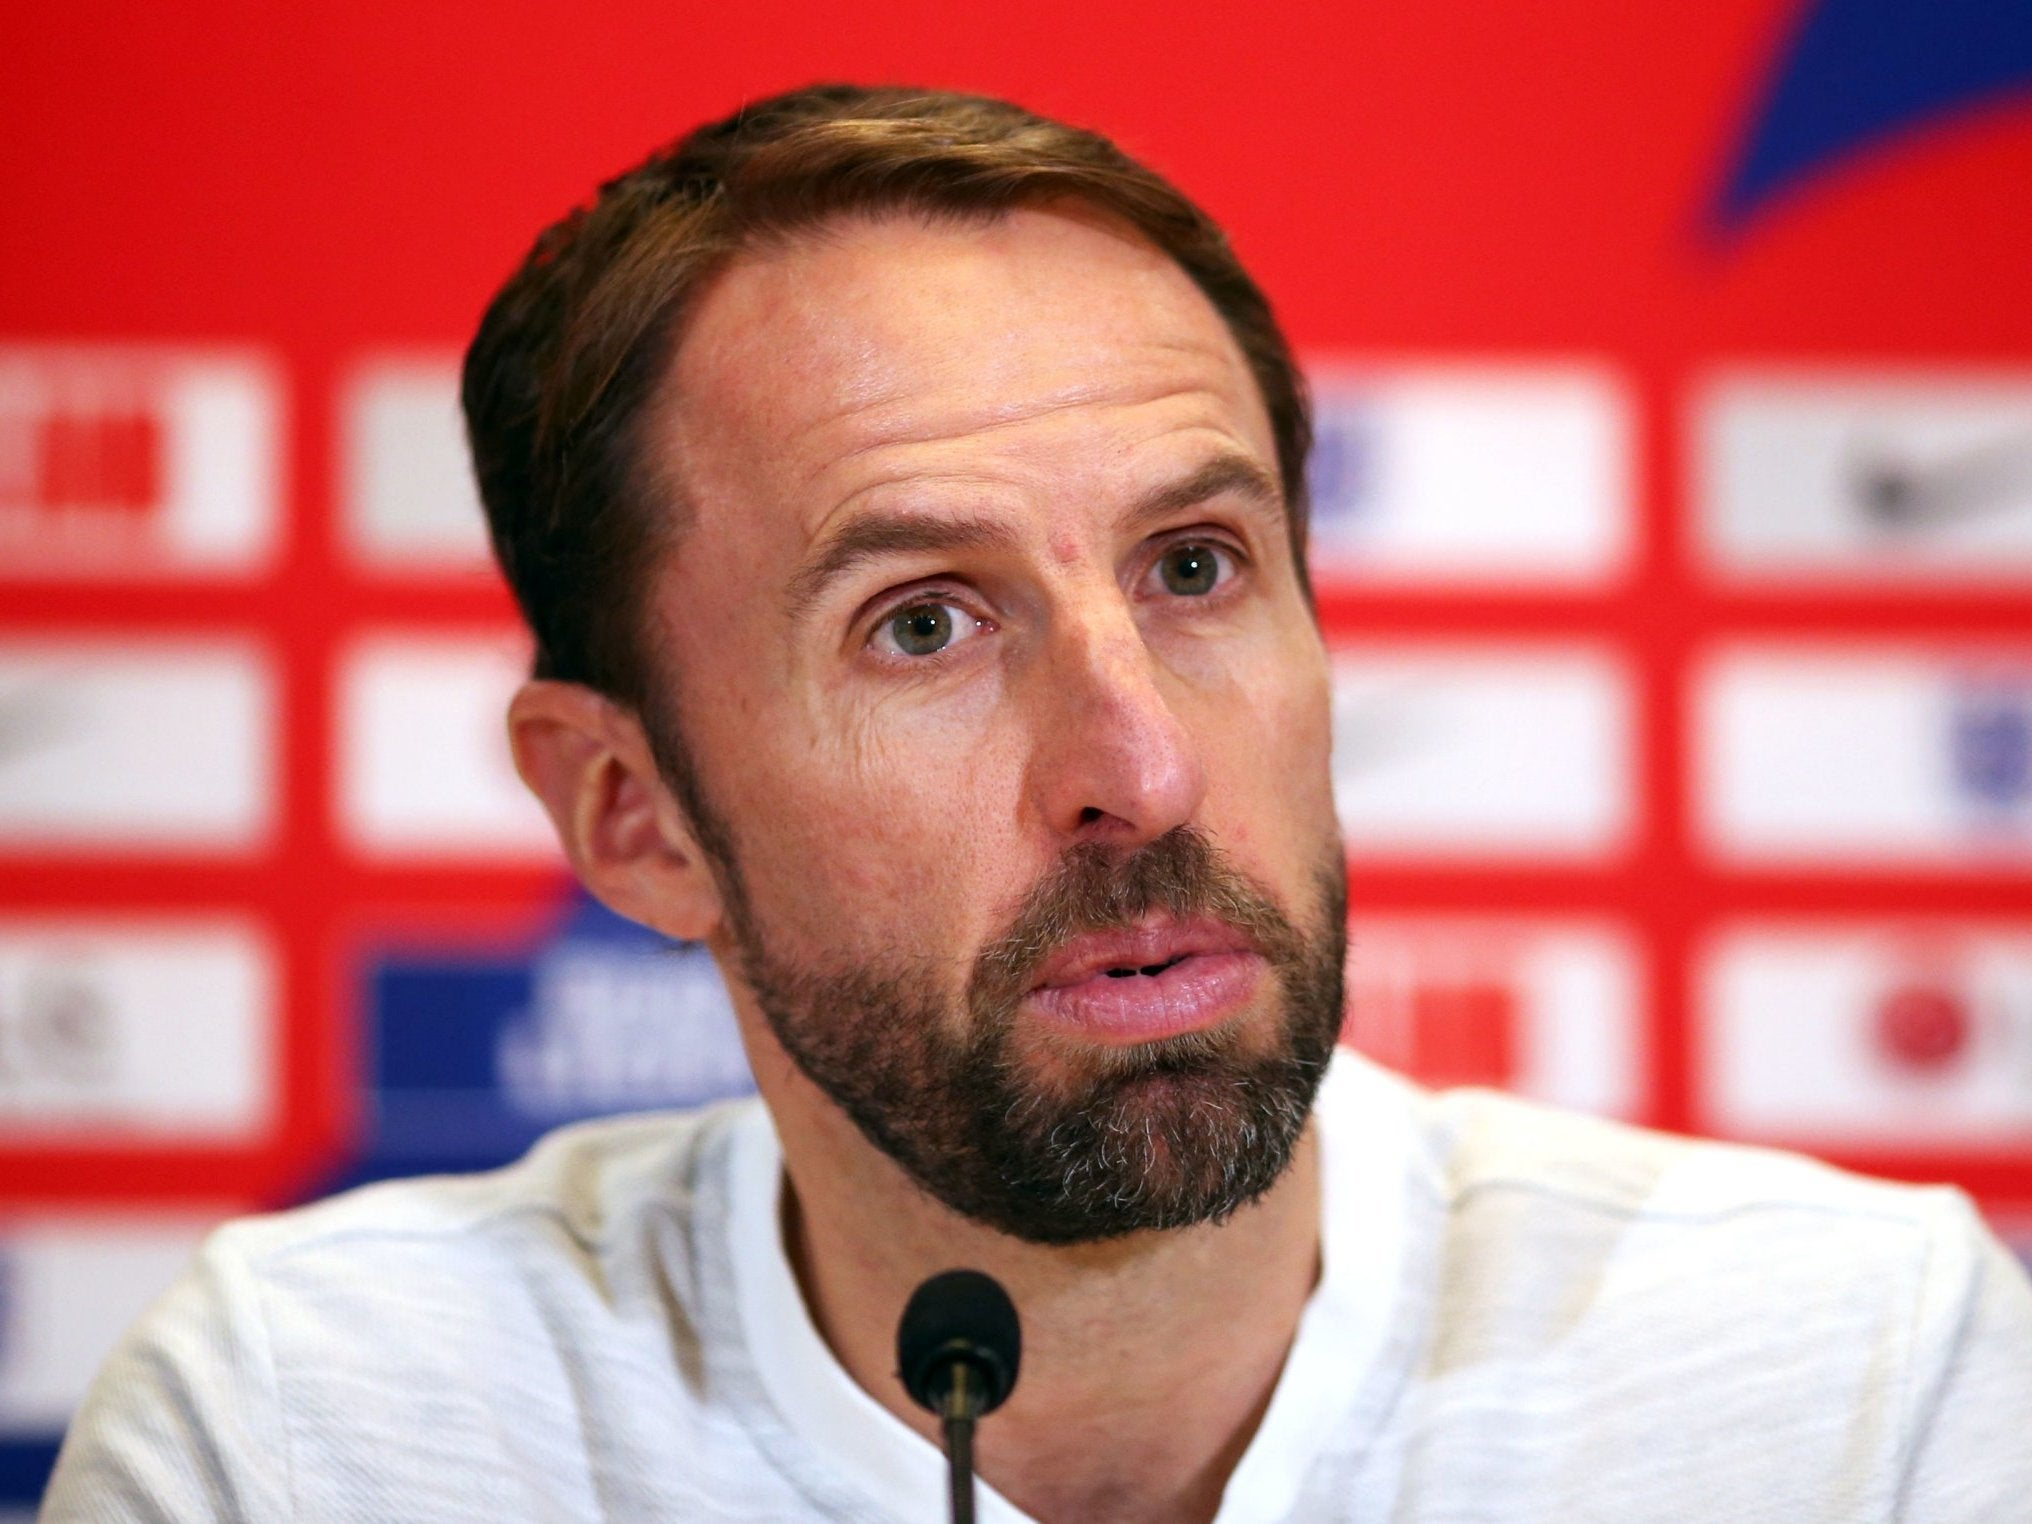 England vs Croatia: Gareth Southgate says England have improved a lot since World Cup defeat